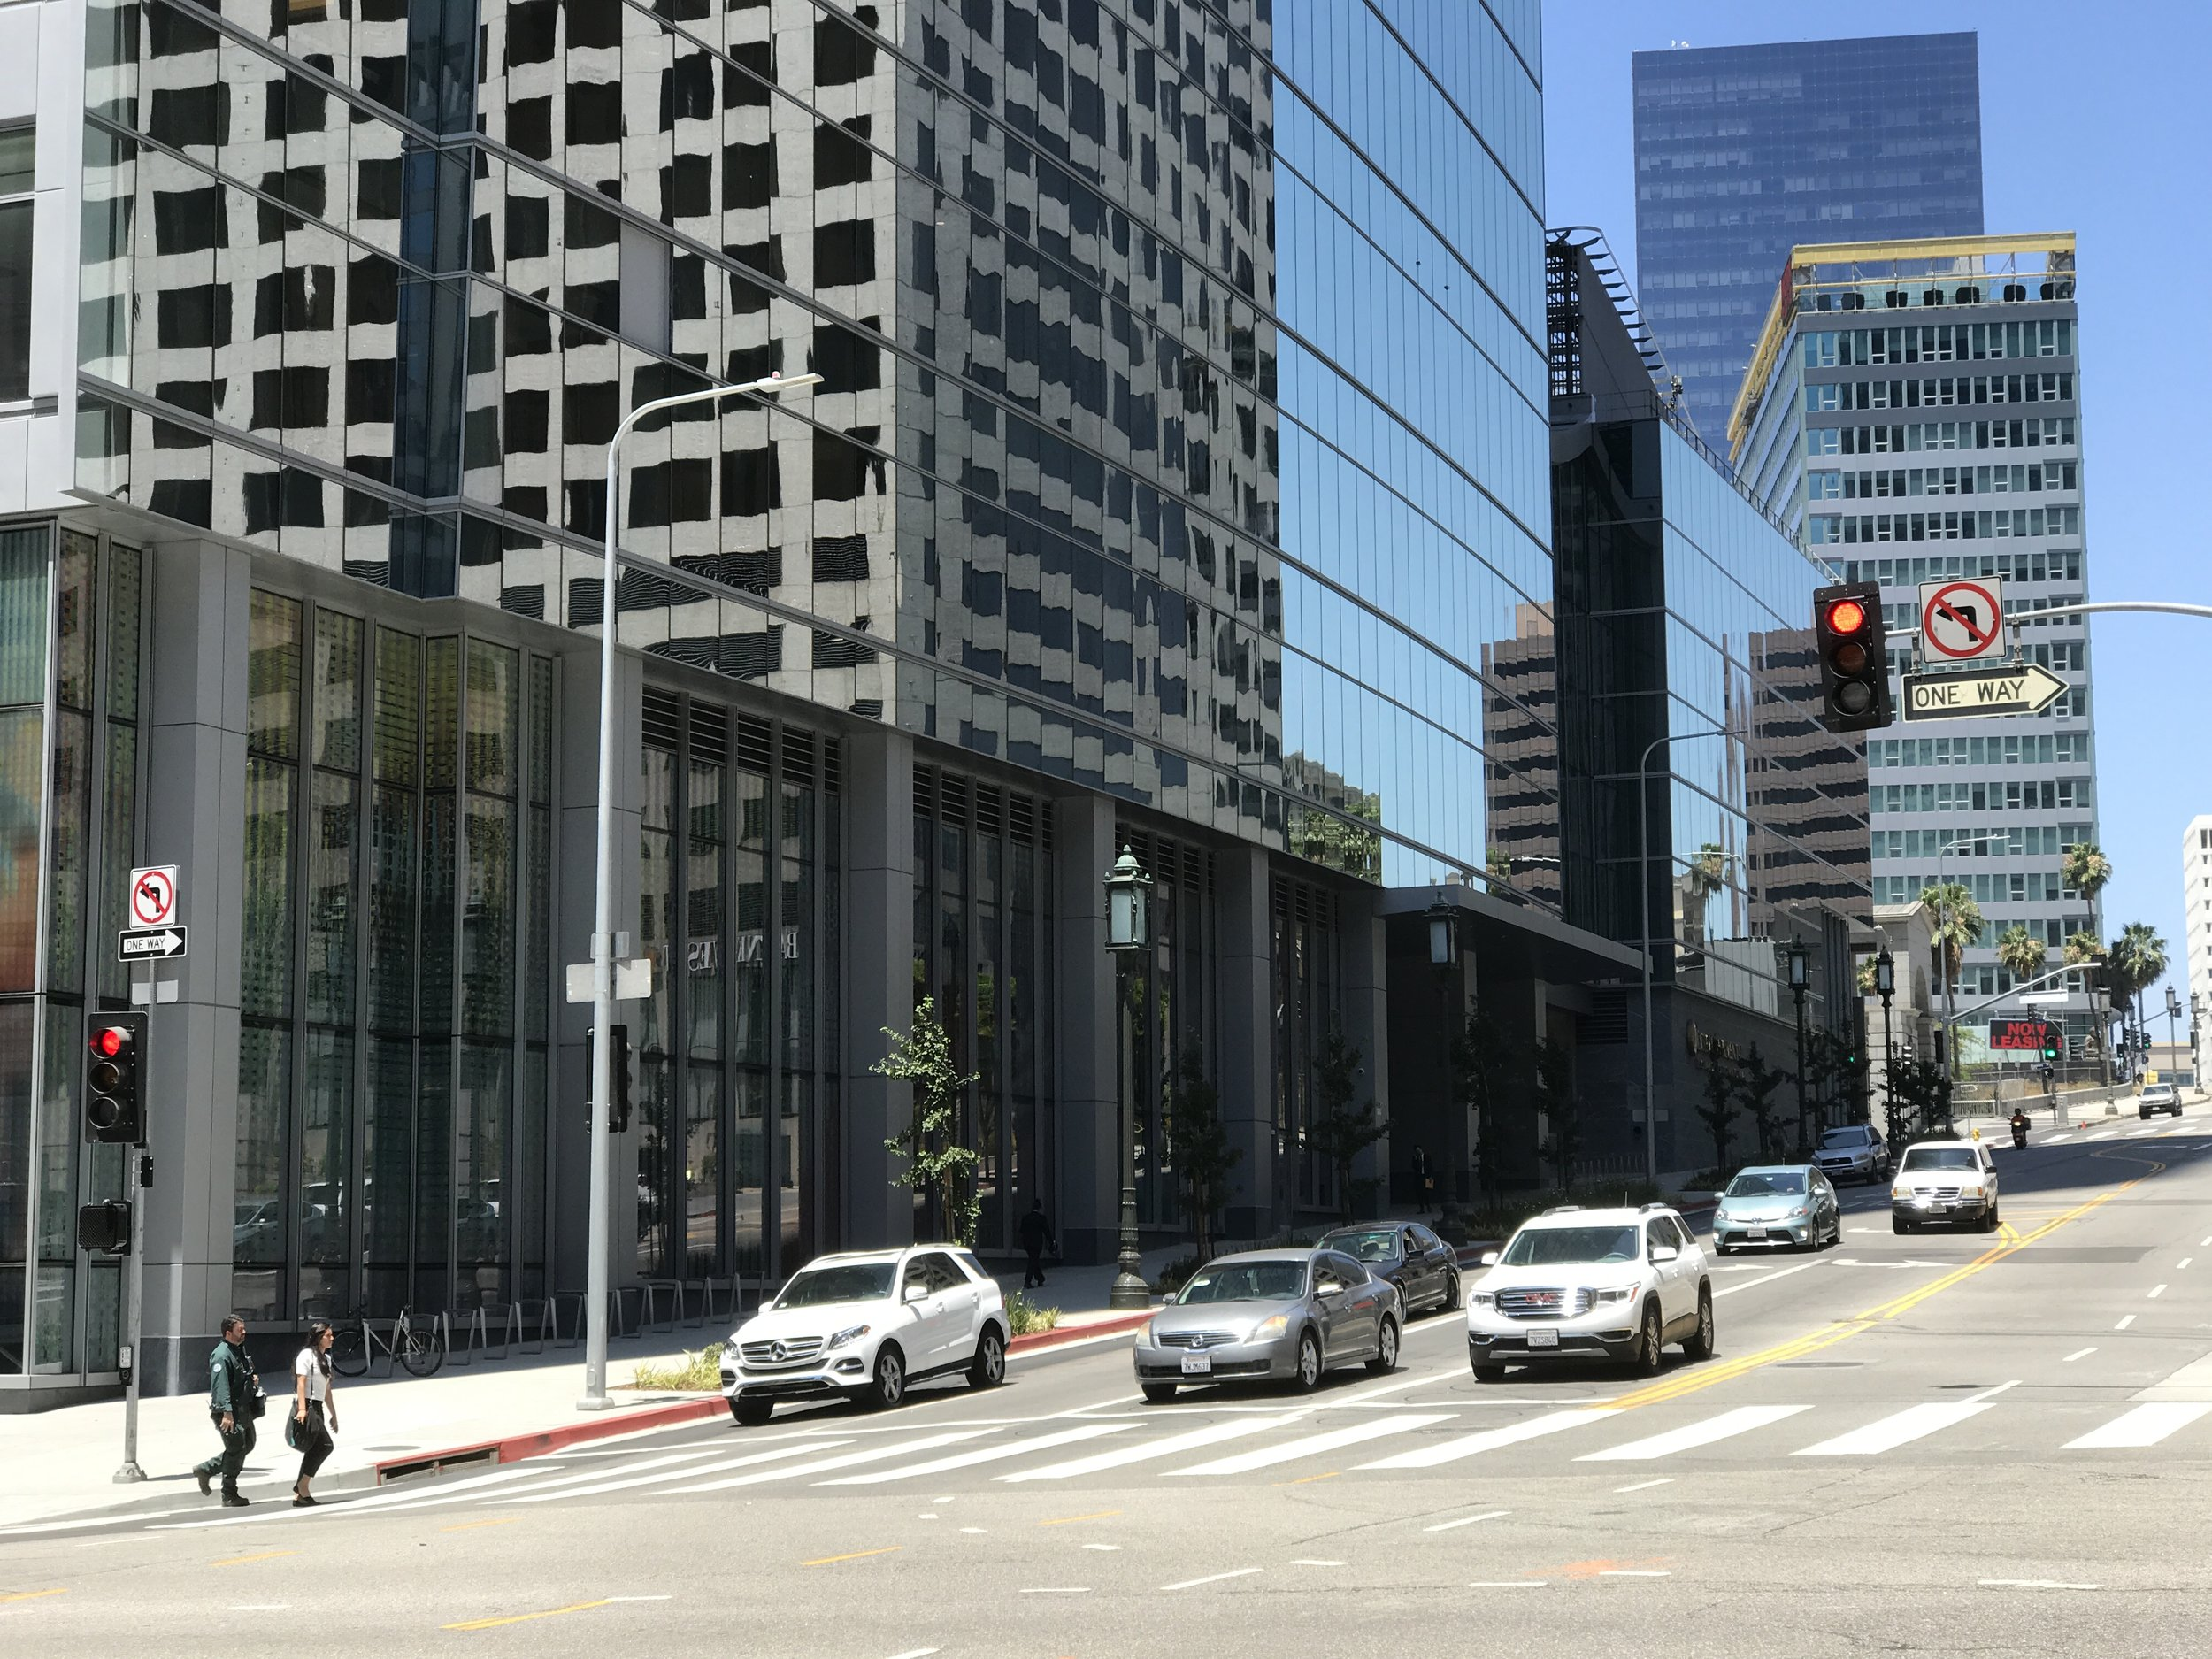 The Wilshire Boulevard facade at Wilshire Grand Center, similarly lacking in street level activity.